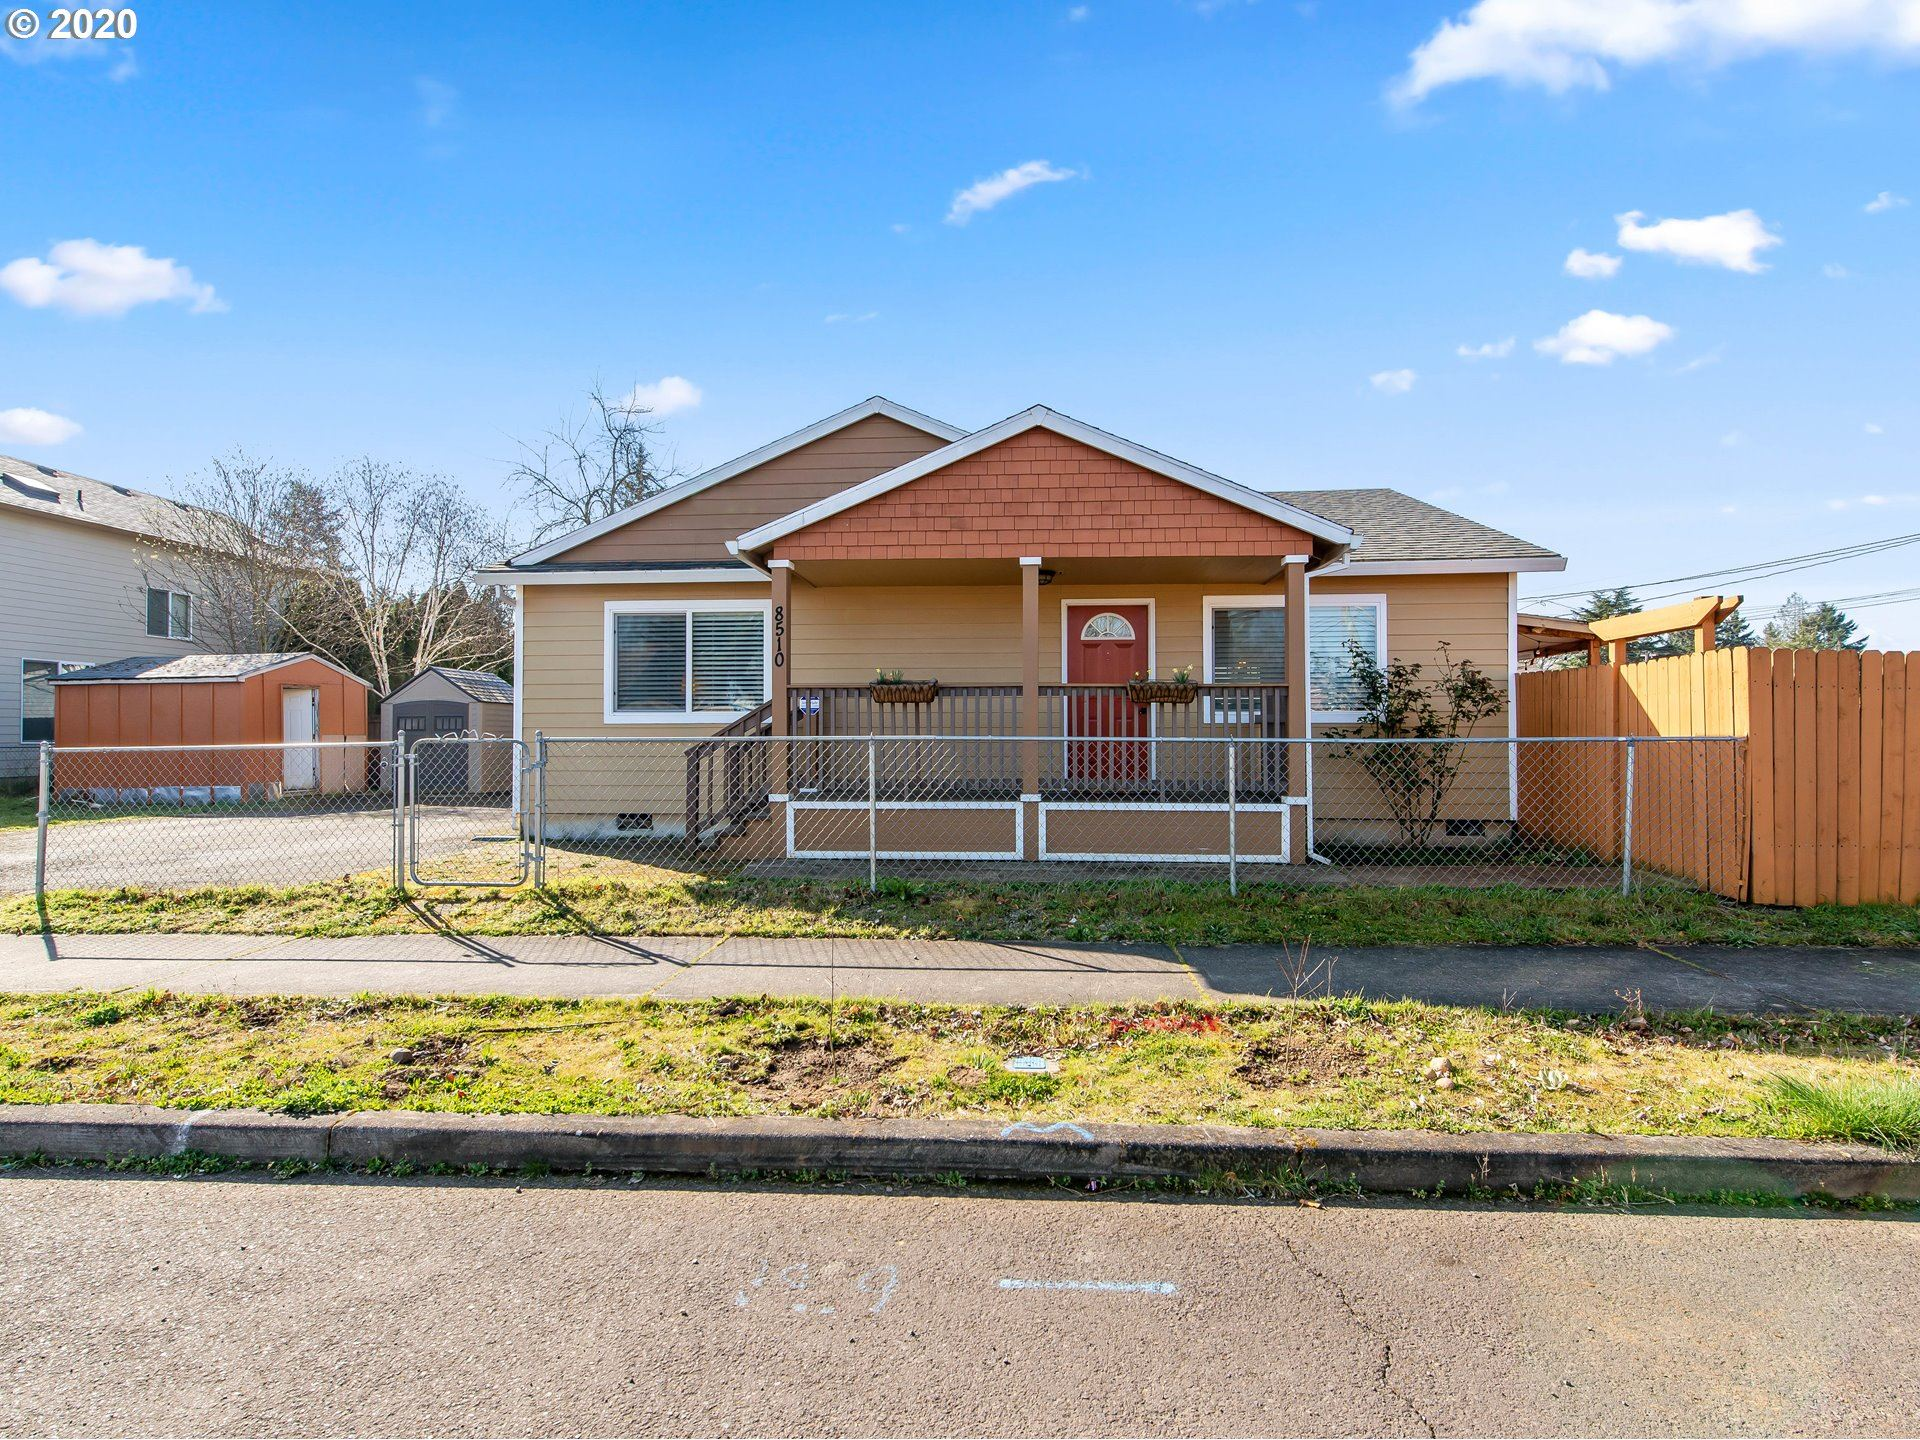 8510 SE 65TH AVE, Portland, OR 97206 - MLS#: 20303927